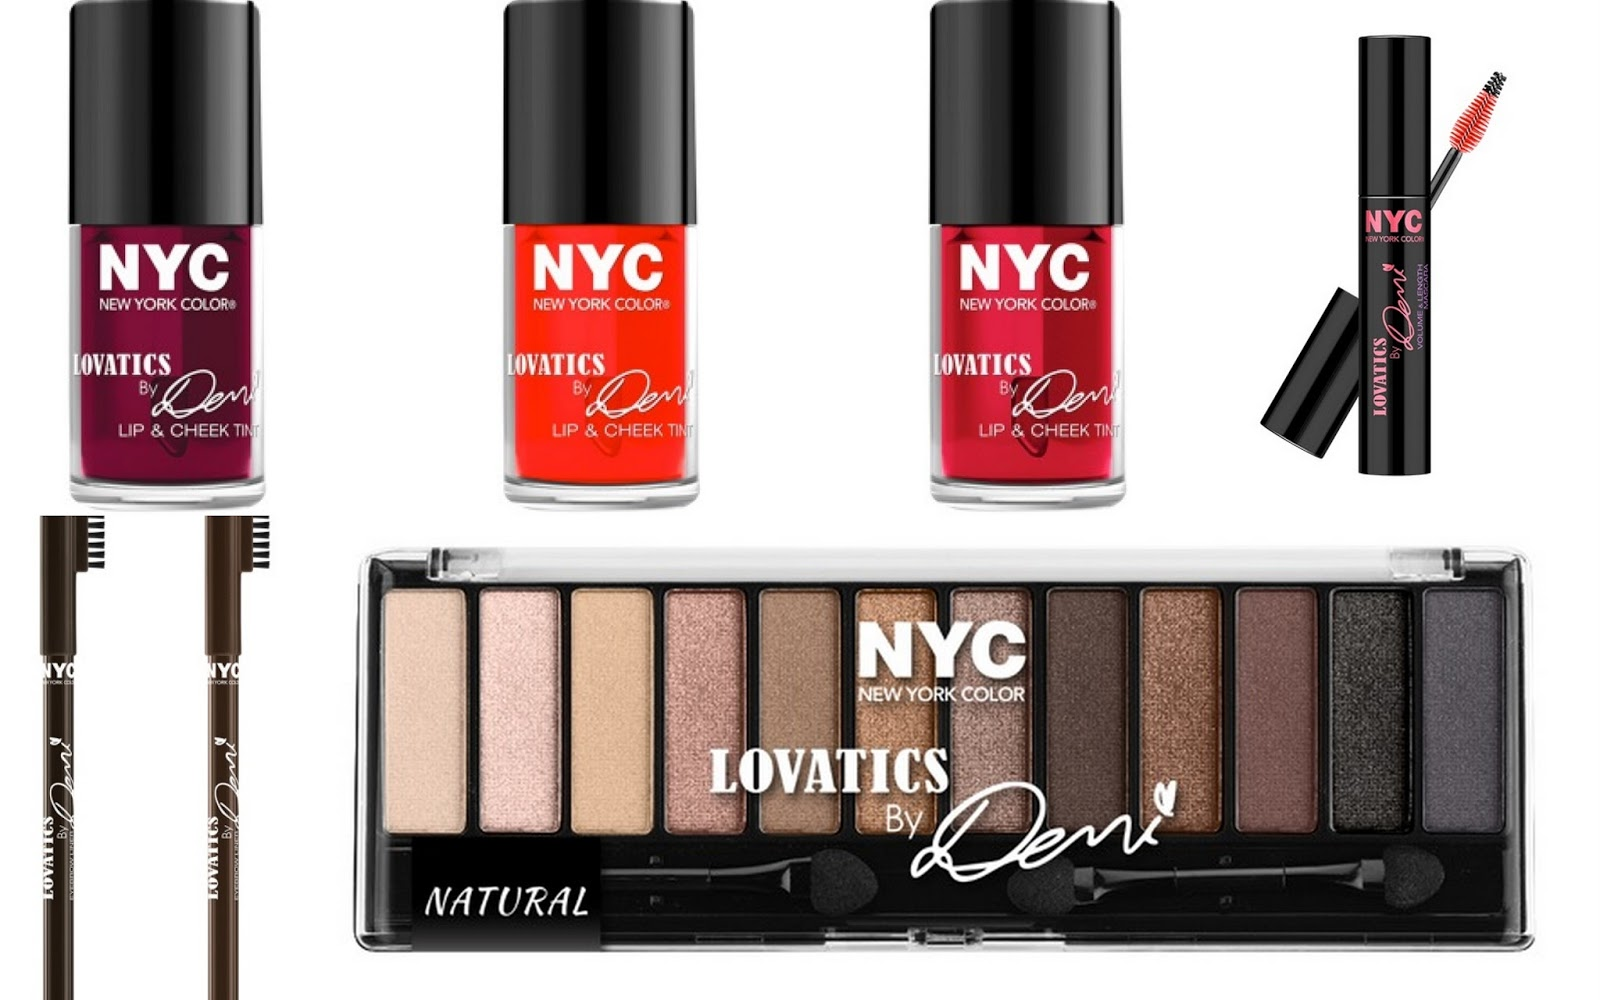 Nyc Cosmetics Mascara, Liners, Polish Only $051. Where To Get College Loans Ring Central Voip. St Lukes Family Practice Home Security Alabama. Pierre Esprit Radisson Stock Trading Forums. Get Out Debt Consolidation Hong Kong Lodging. Associates Degree Online Cost. Home School Middle School At&t Mobile Payment. Workers Comp Attorney Los Angeles. Drainage Pipe Behind Retaining Wall